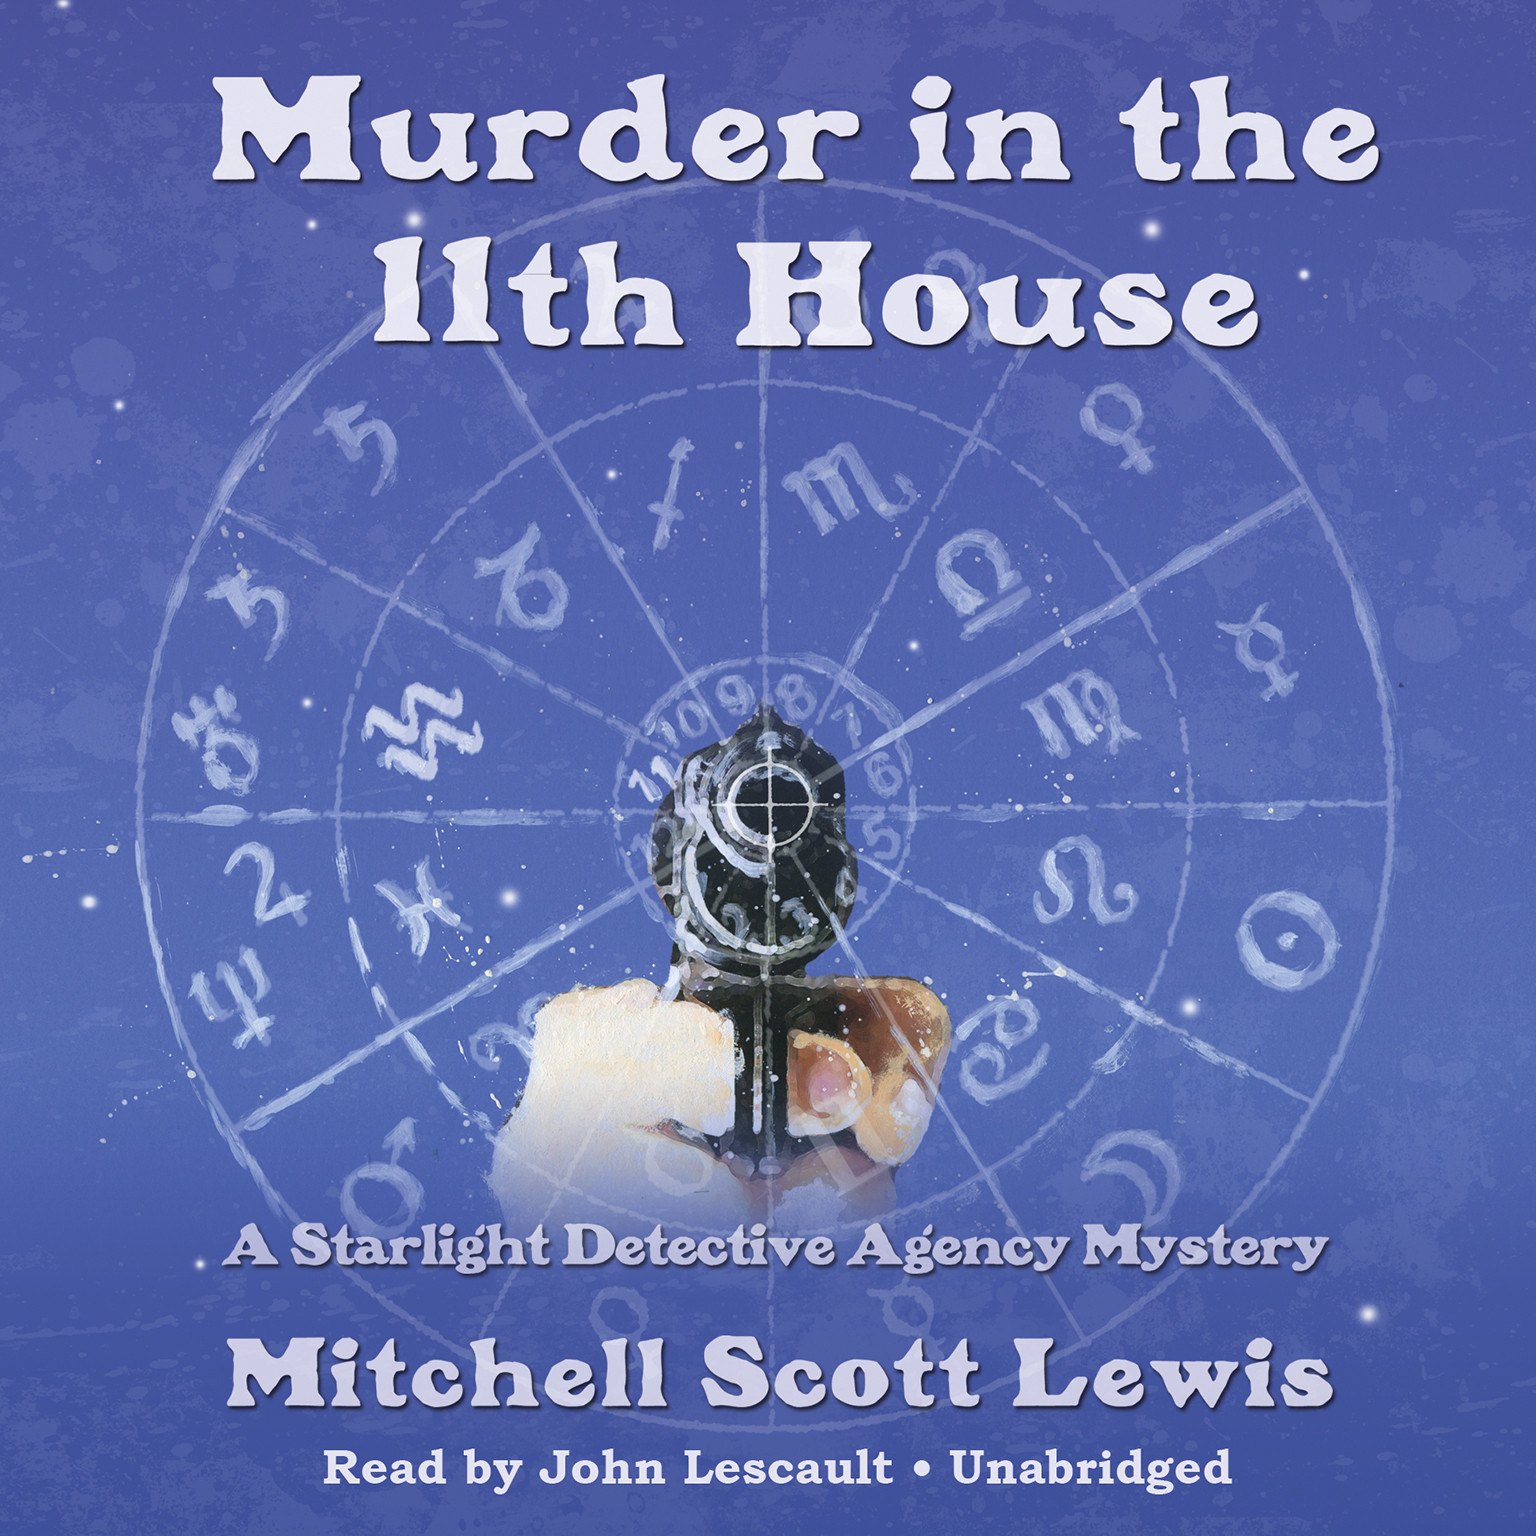 Printable Murder in the 11th House: A Starlight Detective Agency Mystery Audiobook Cover Art